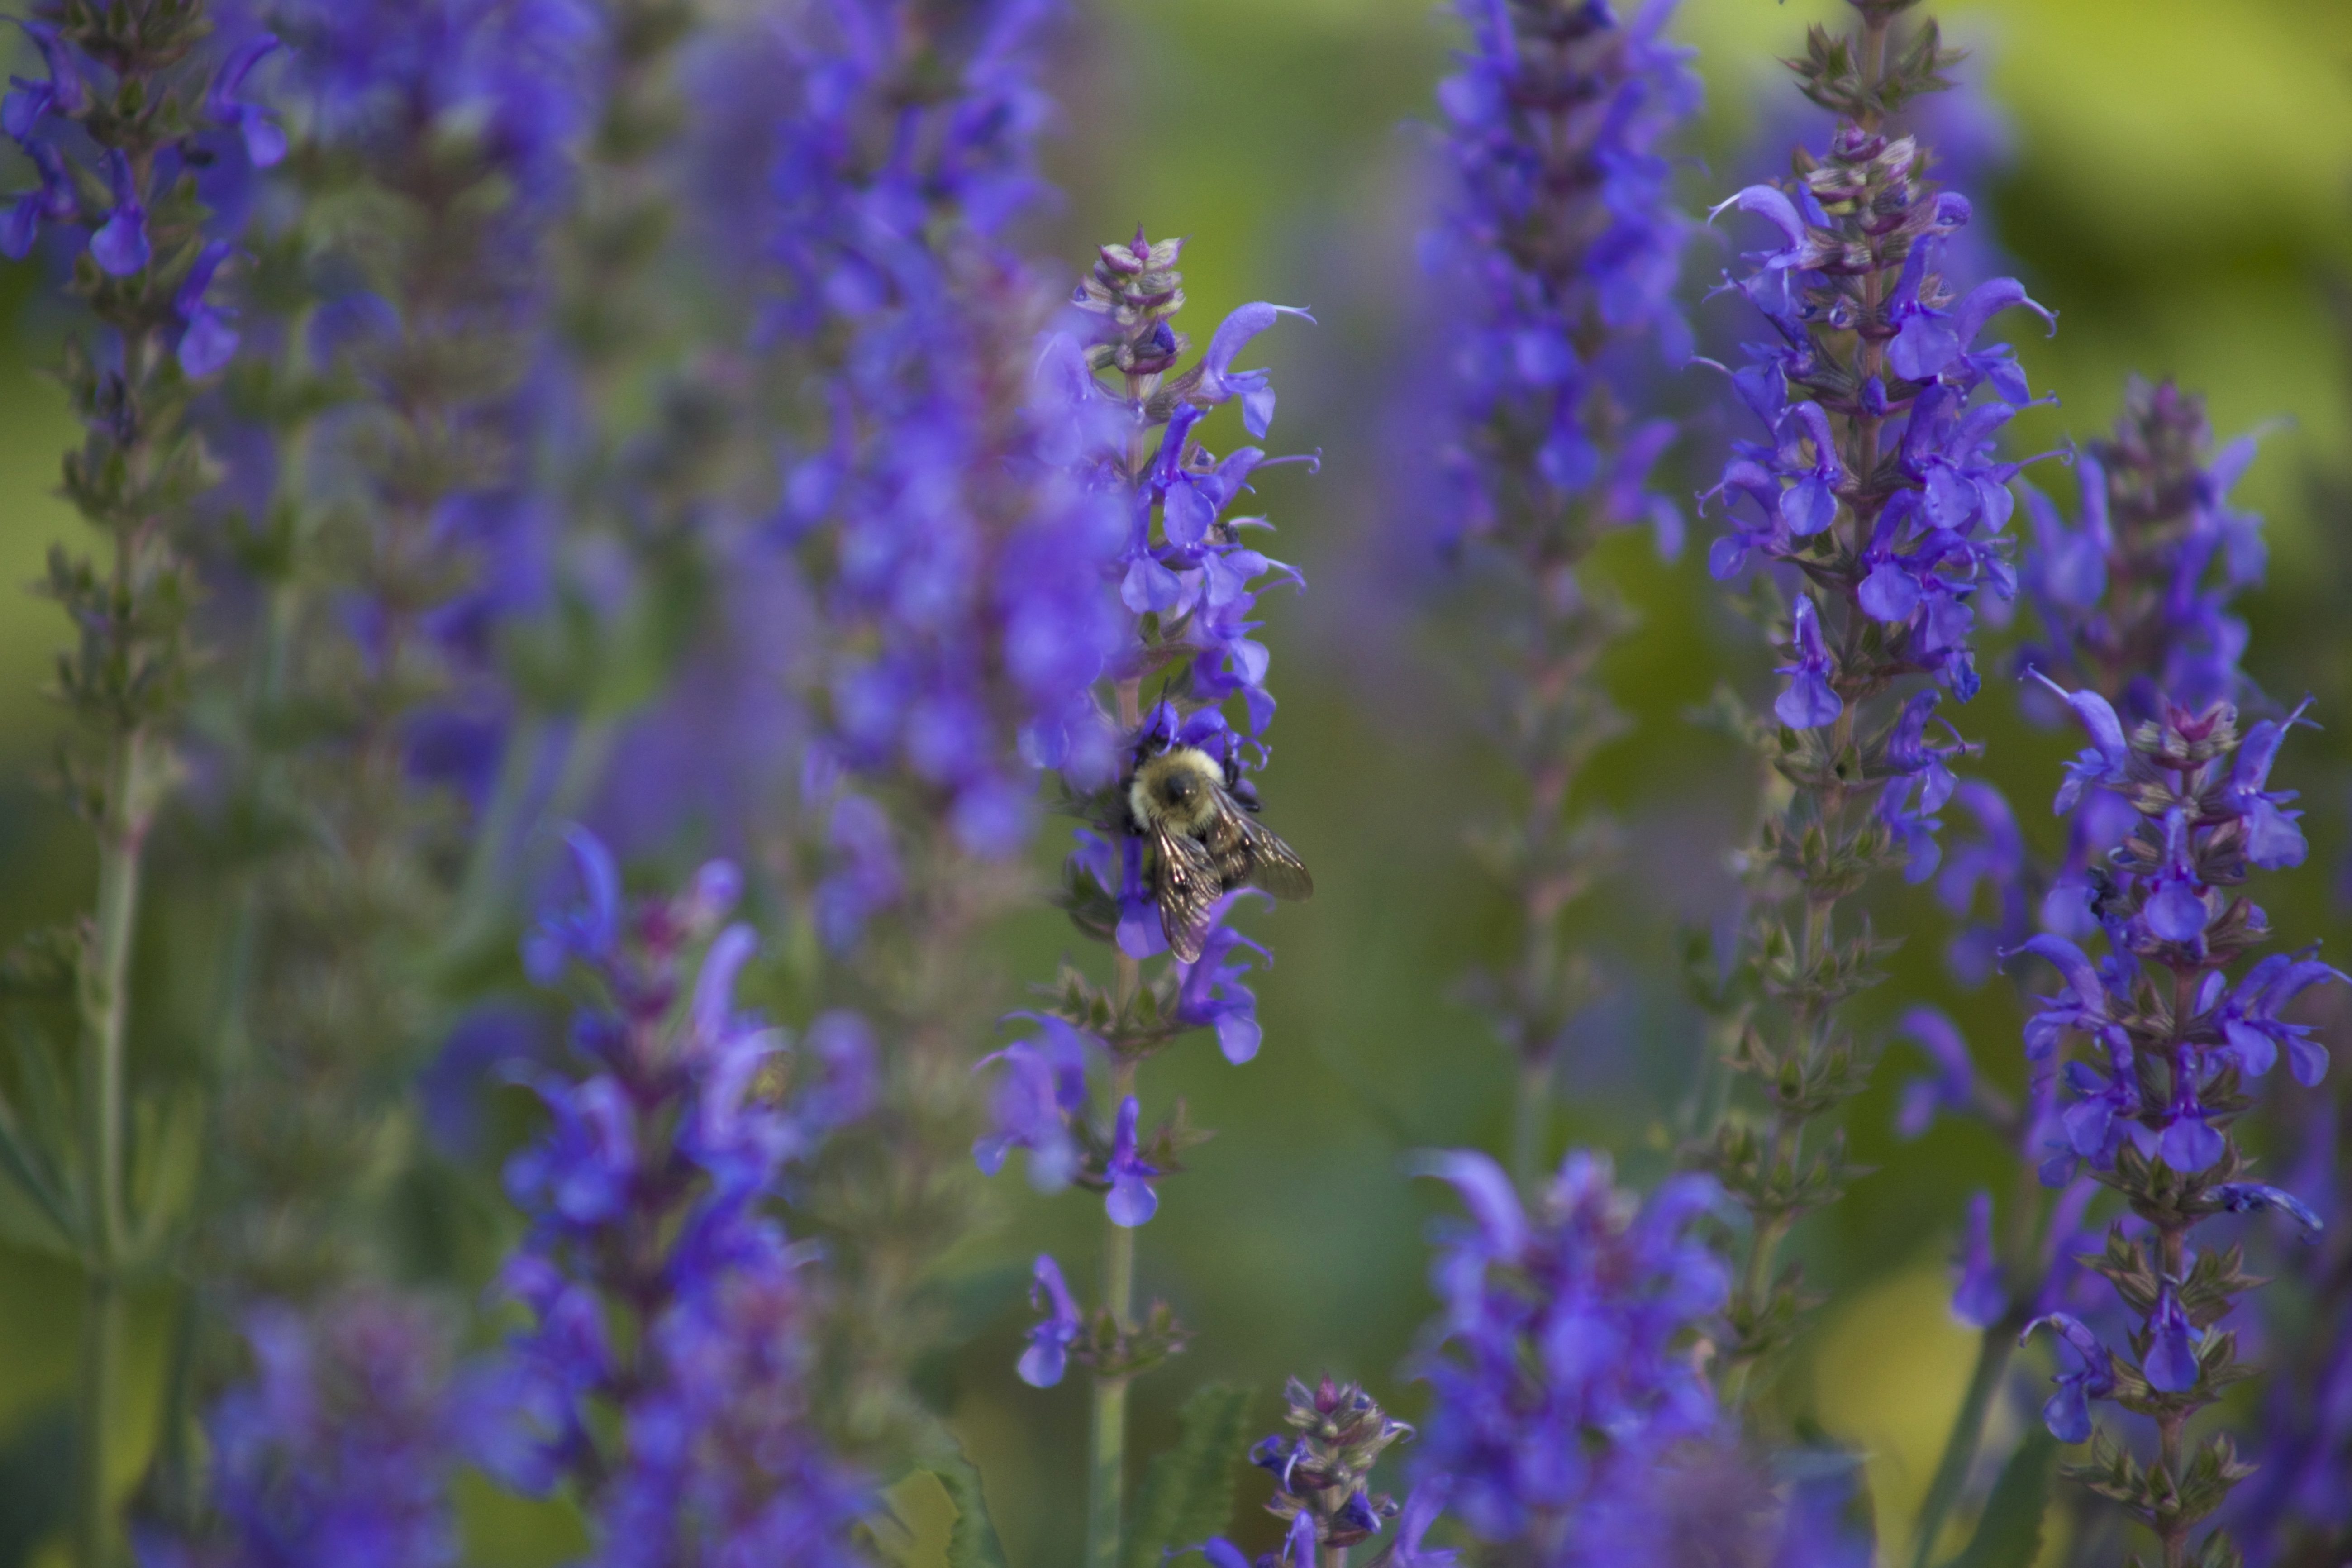 Free picture: bumblebee, insect, purple flowers, wild flowers ...